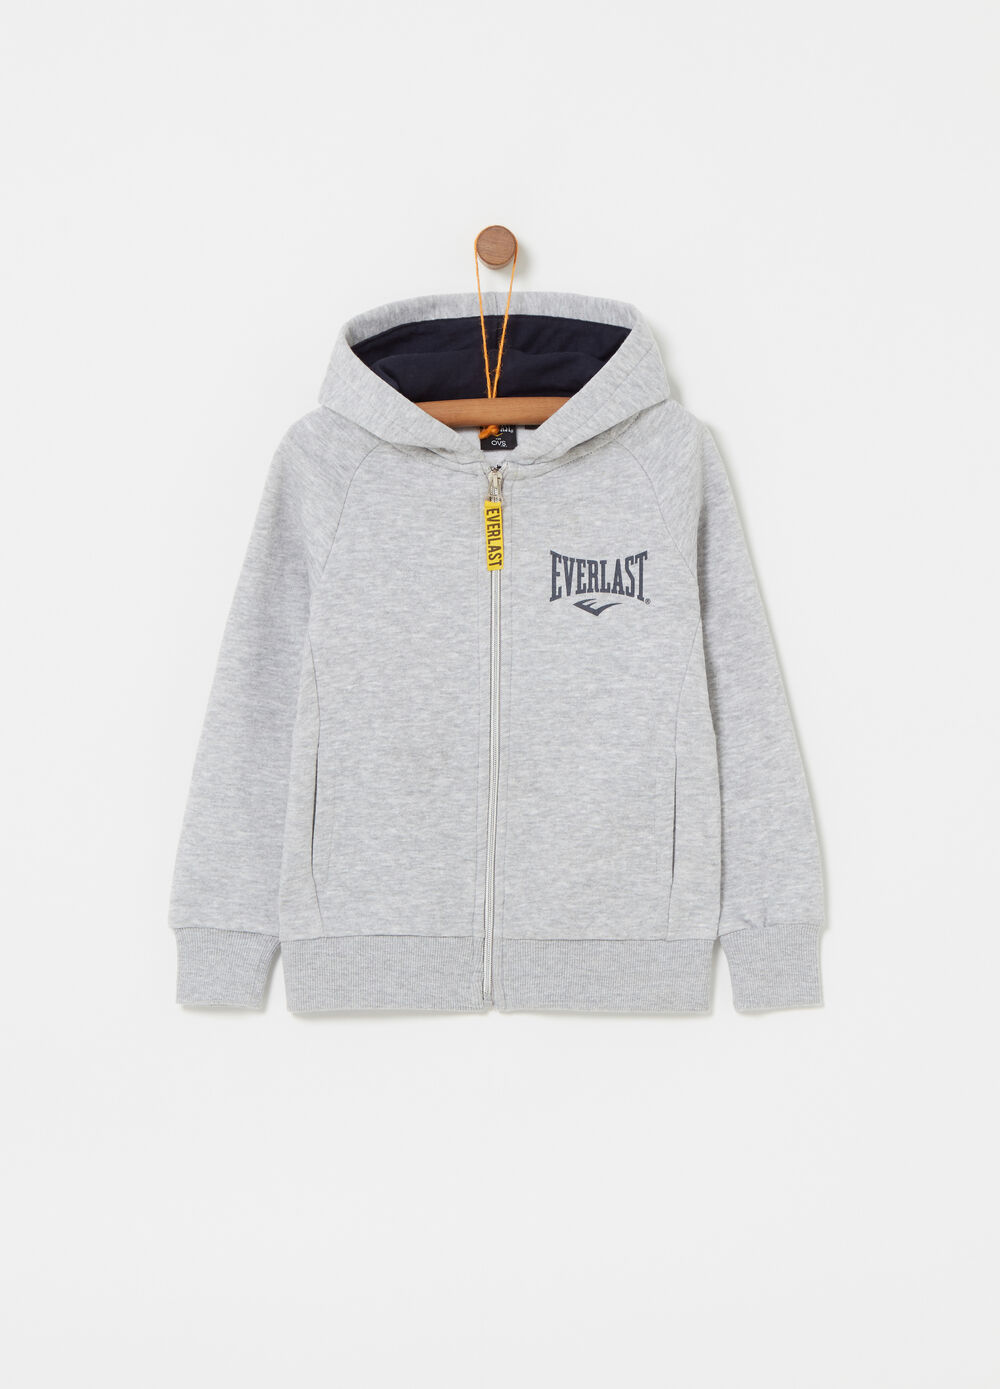 Everlast winter fabric sweatshirt with raglan sleeves